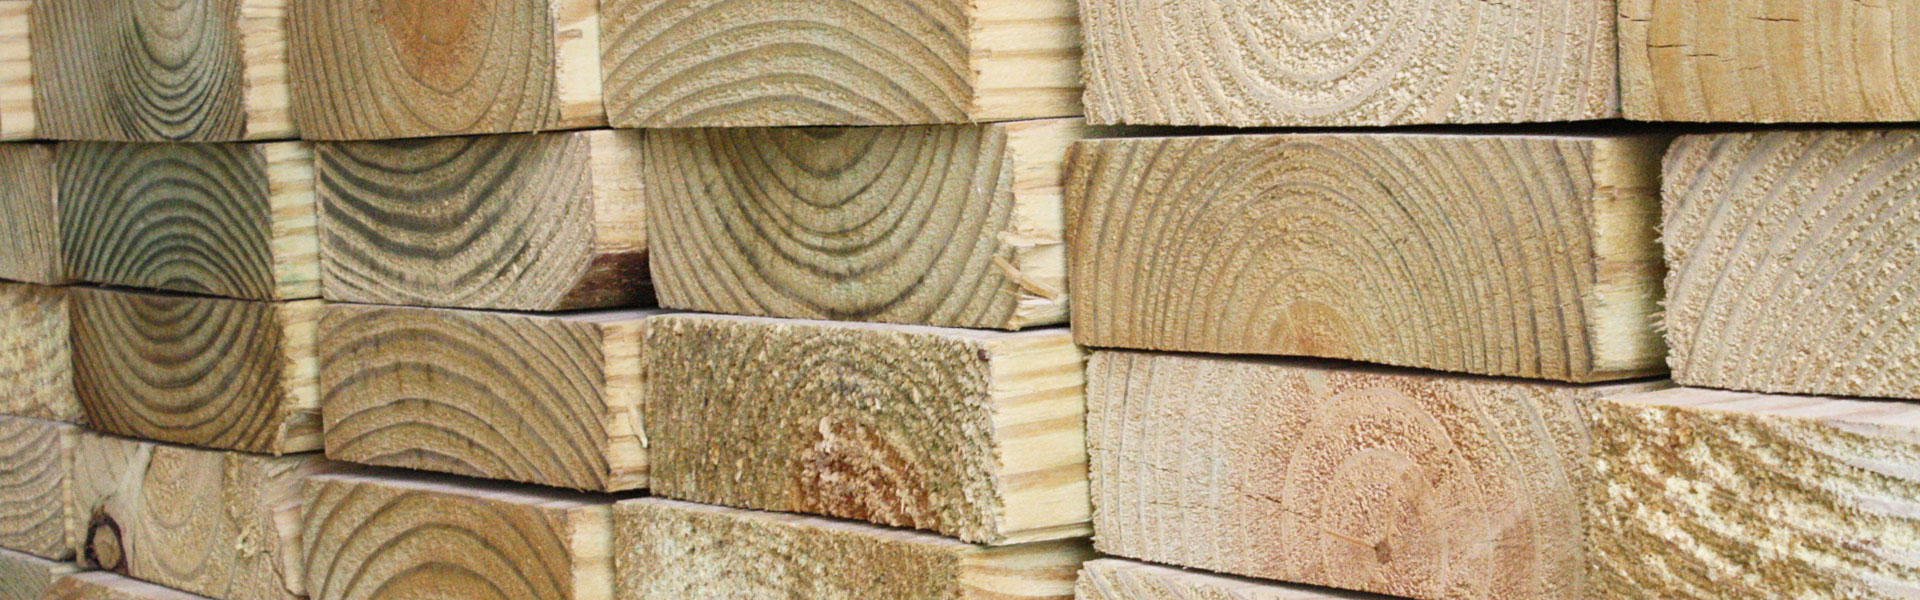 Lumber Supplies Minooka